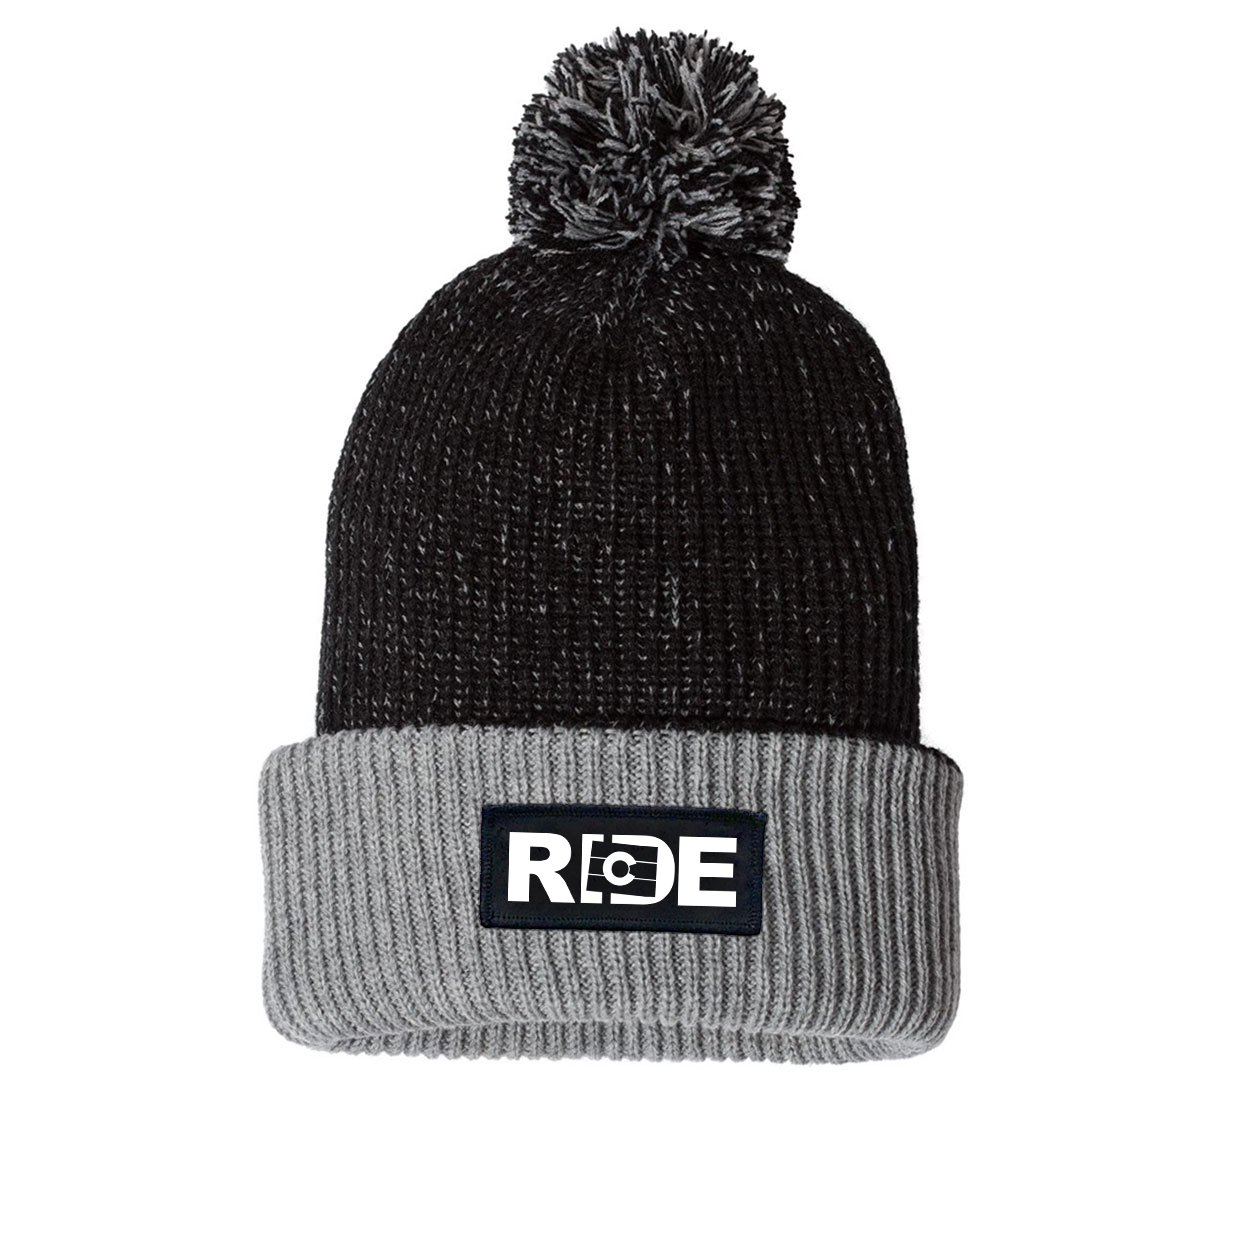 Ride Colorado Night Out Woven Patch Roll Up Pom Knit Beanie Black/Gray (White Logo)